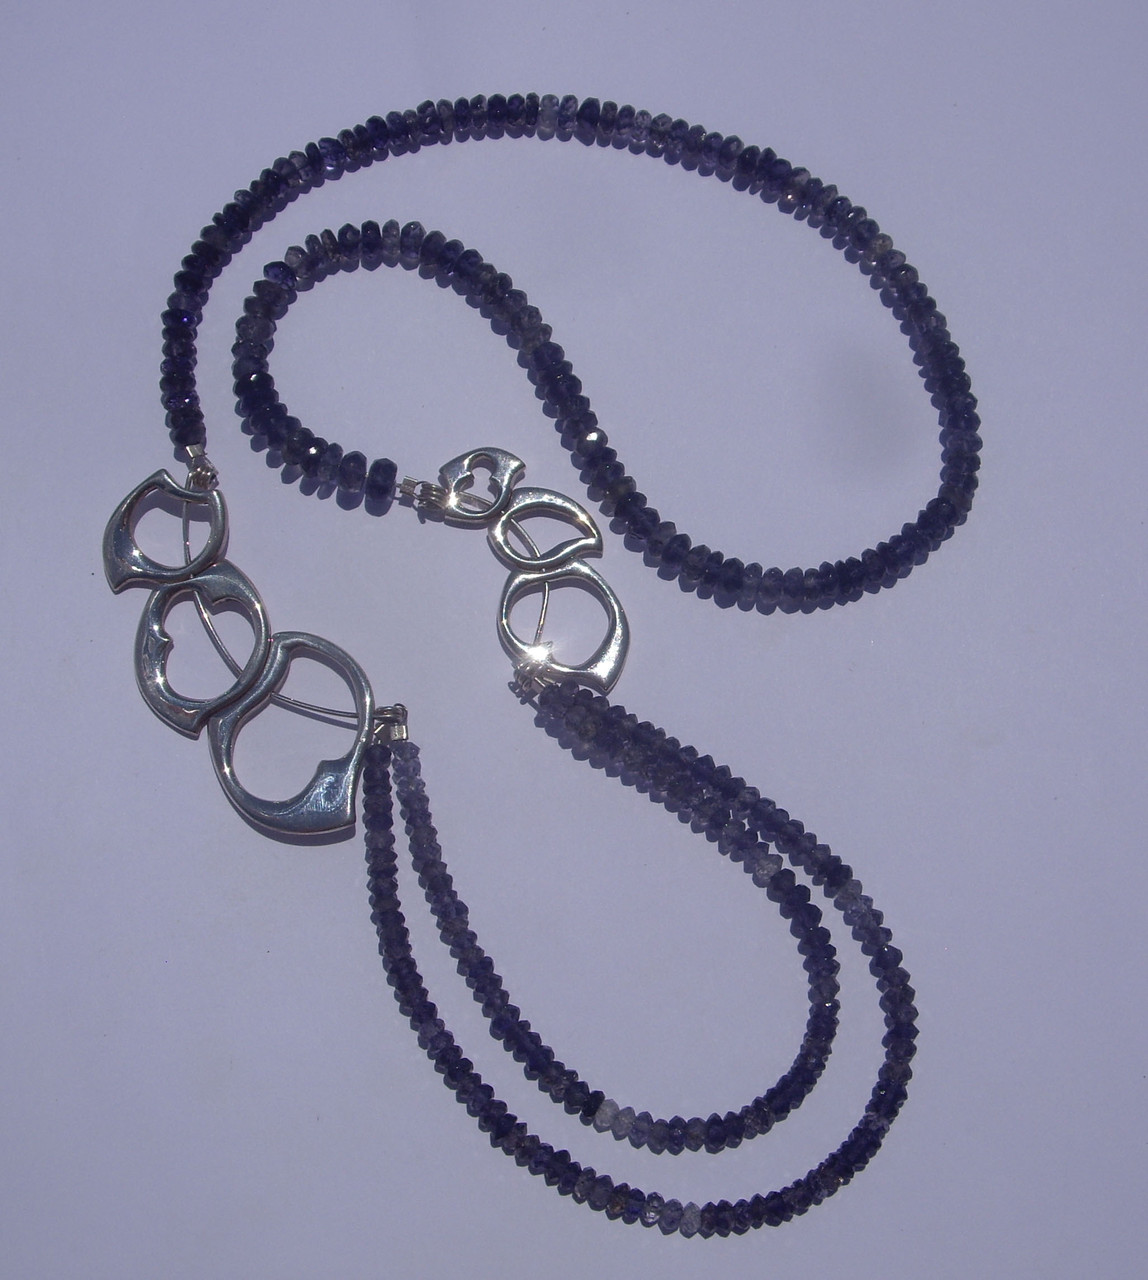 Large Wave Necklace 1. Sterling Silver, Faceted Iolites